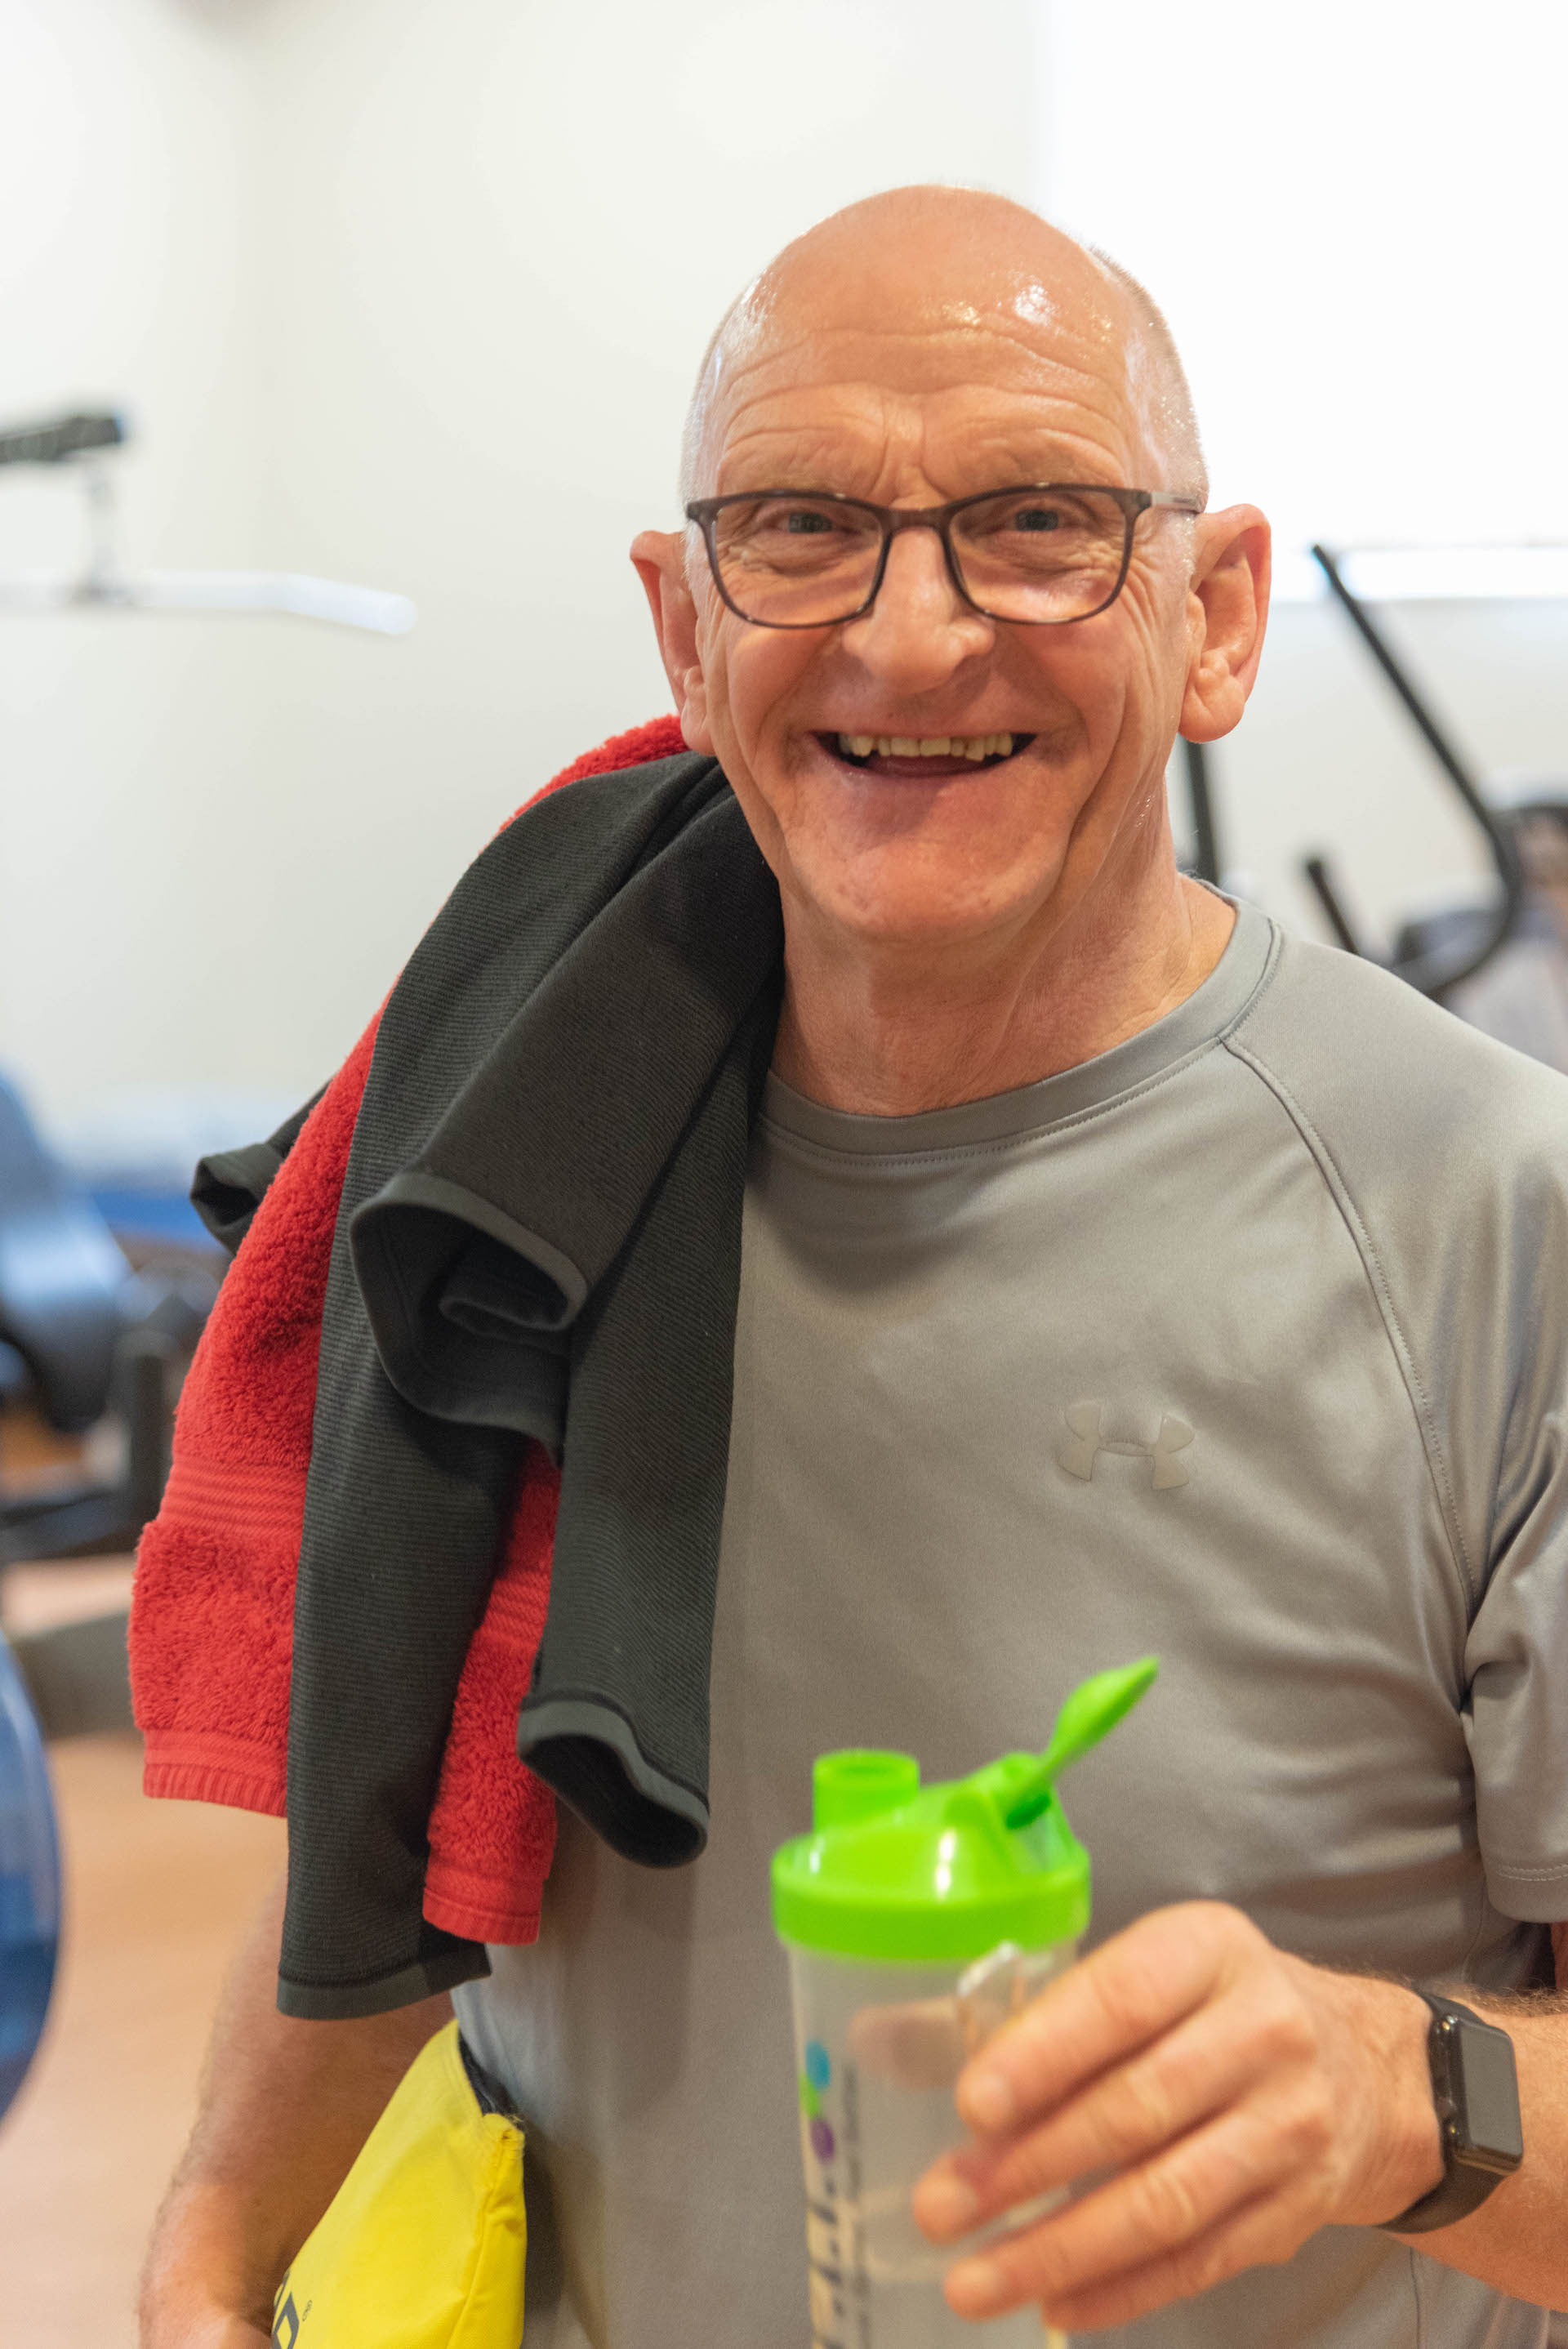 Paul Whittick - Chelsea Pensioner in the gym